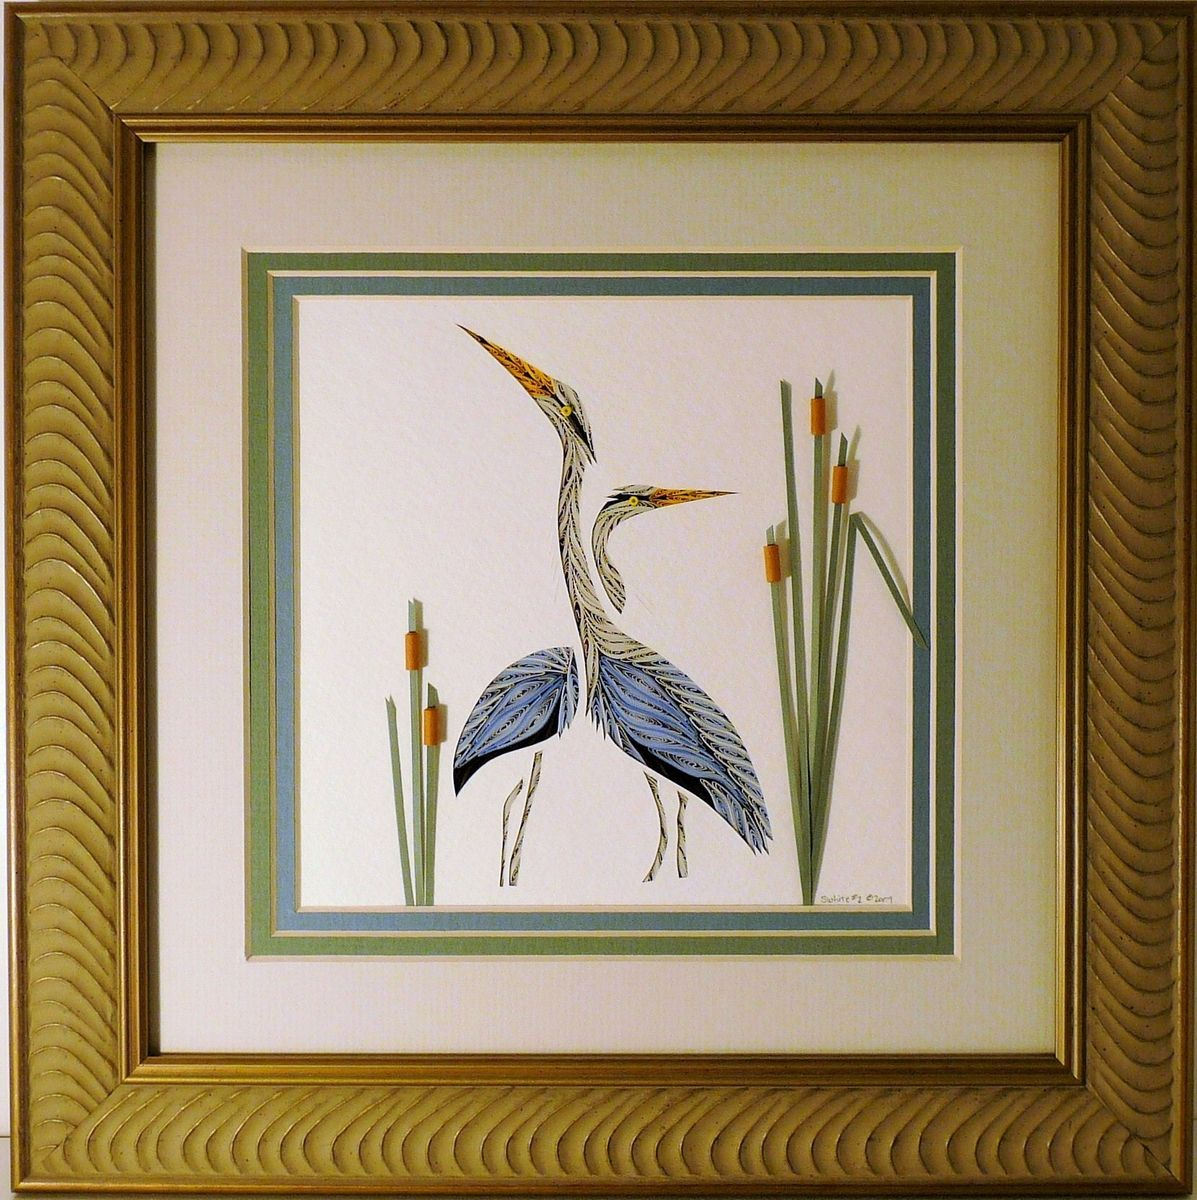 Buy a Handmade Quilled Double Heron Wall Art Framed, made to order ...